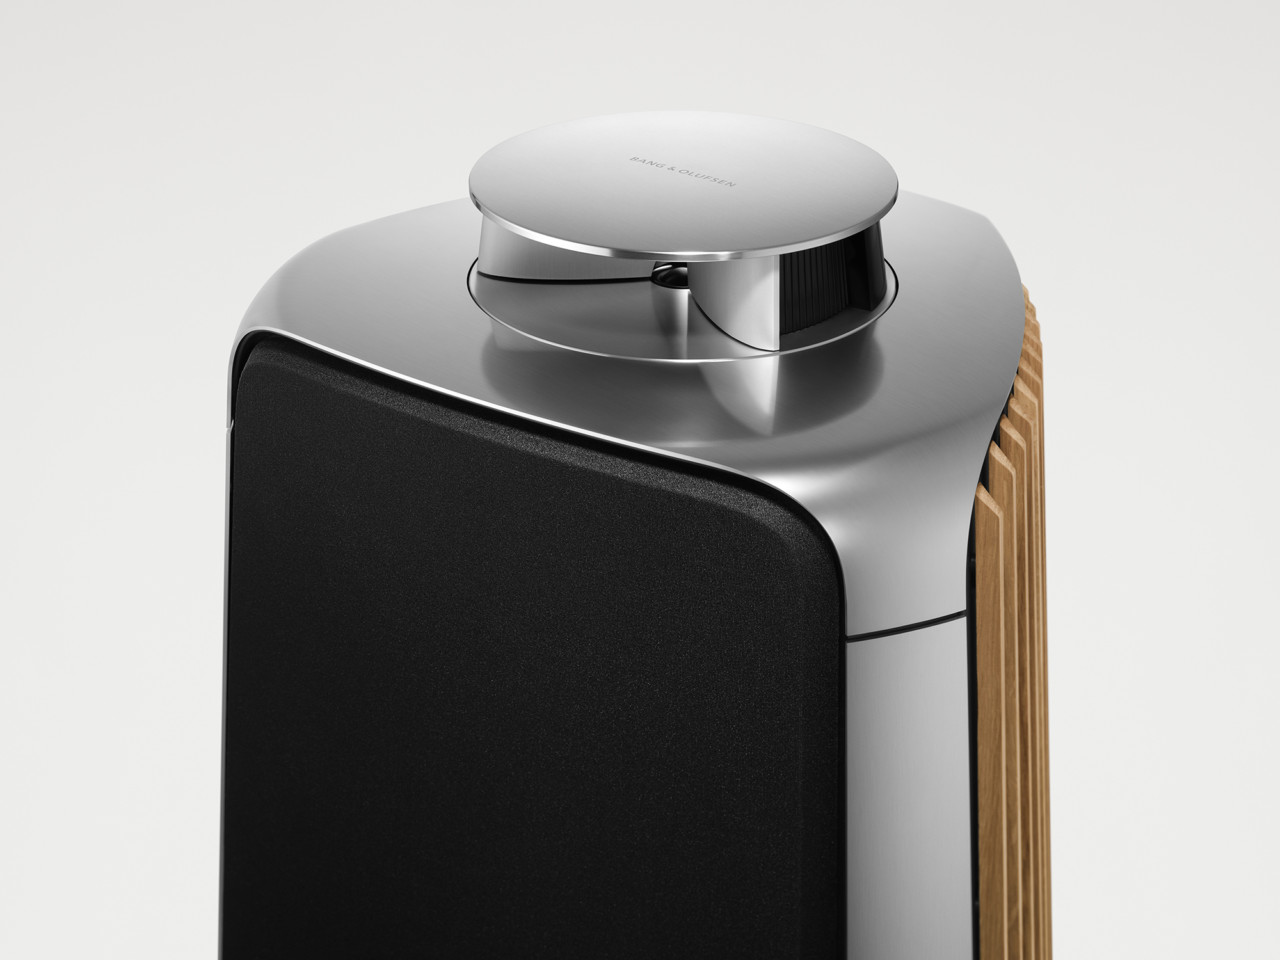 The Bang & Olufsen BeoLab 50 Delivers Precisely Powerful Sound